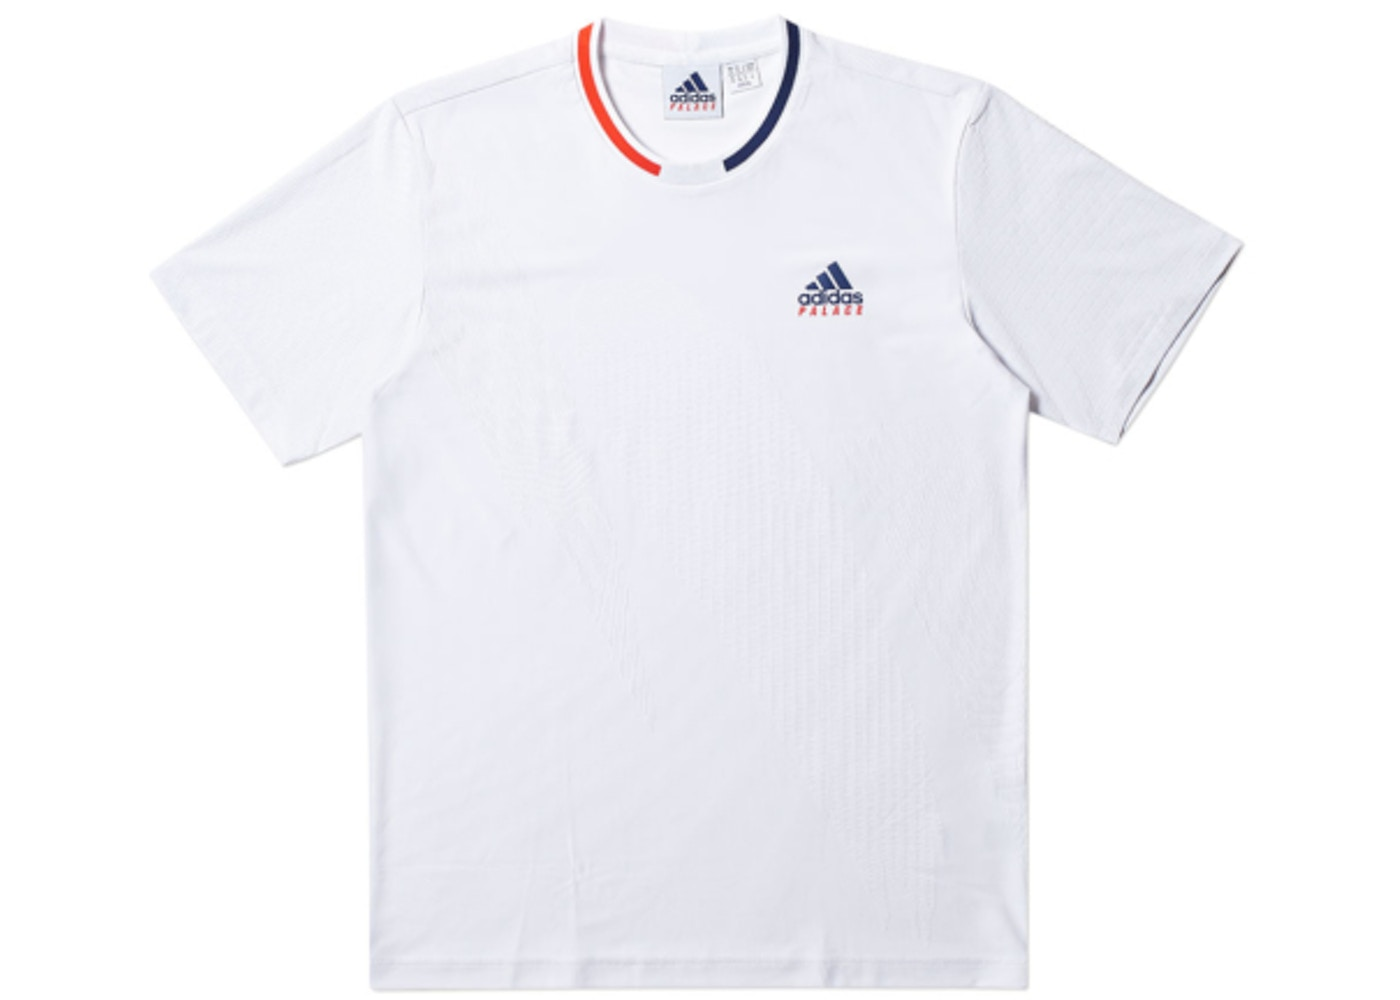 602953d3 Palace adidas On Court Jacquard Tee White. adidas On Court Jacquard